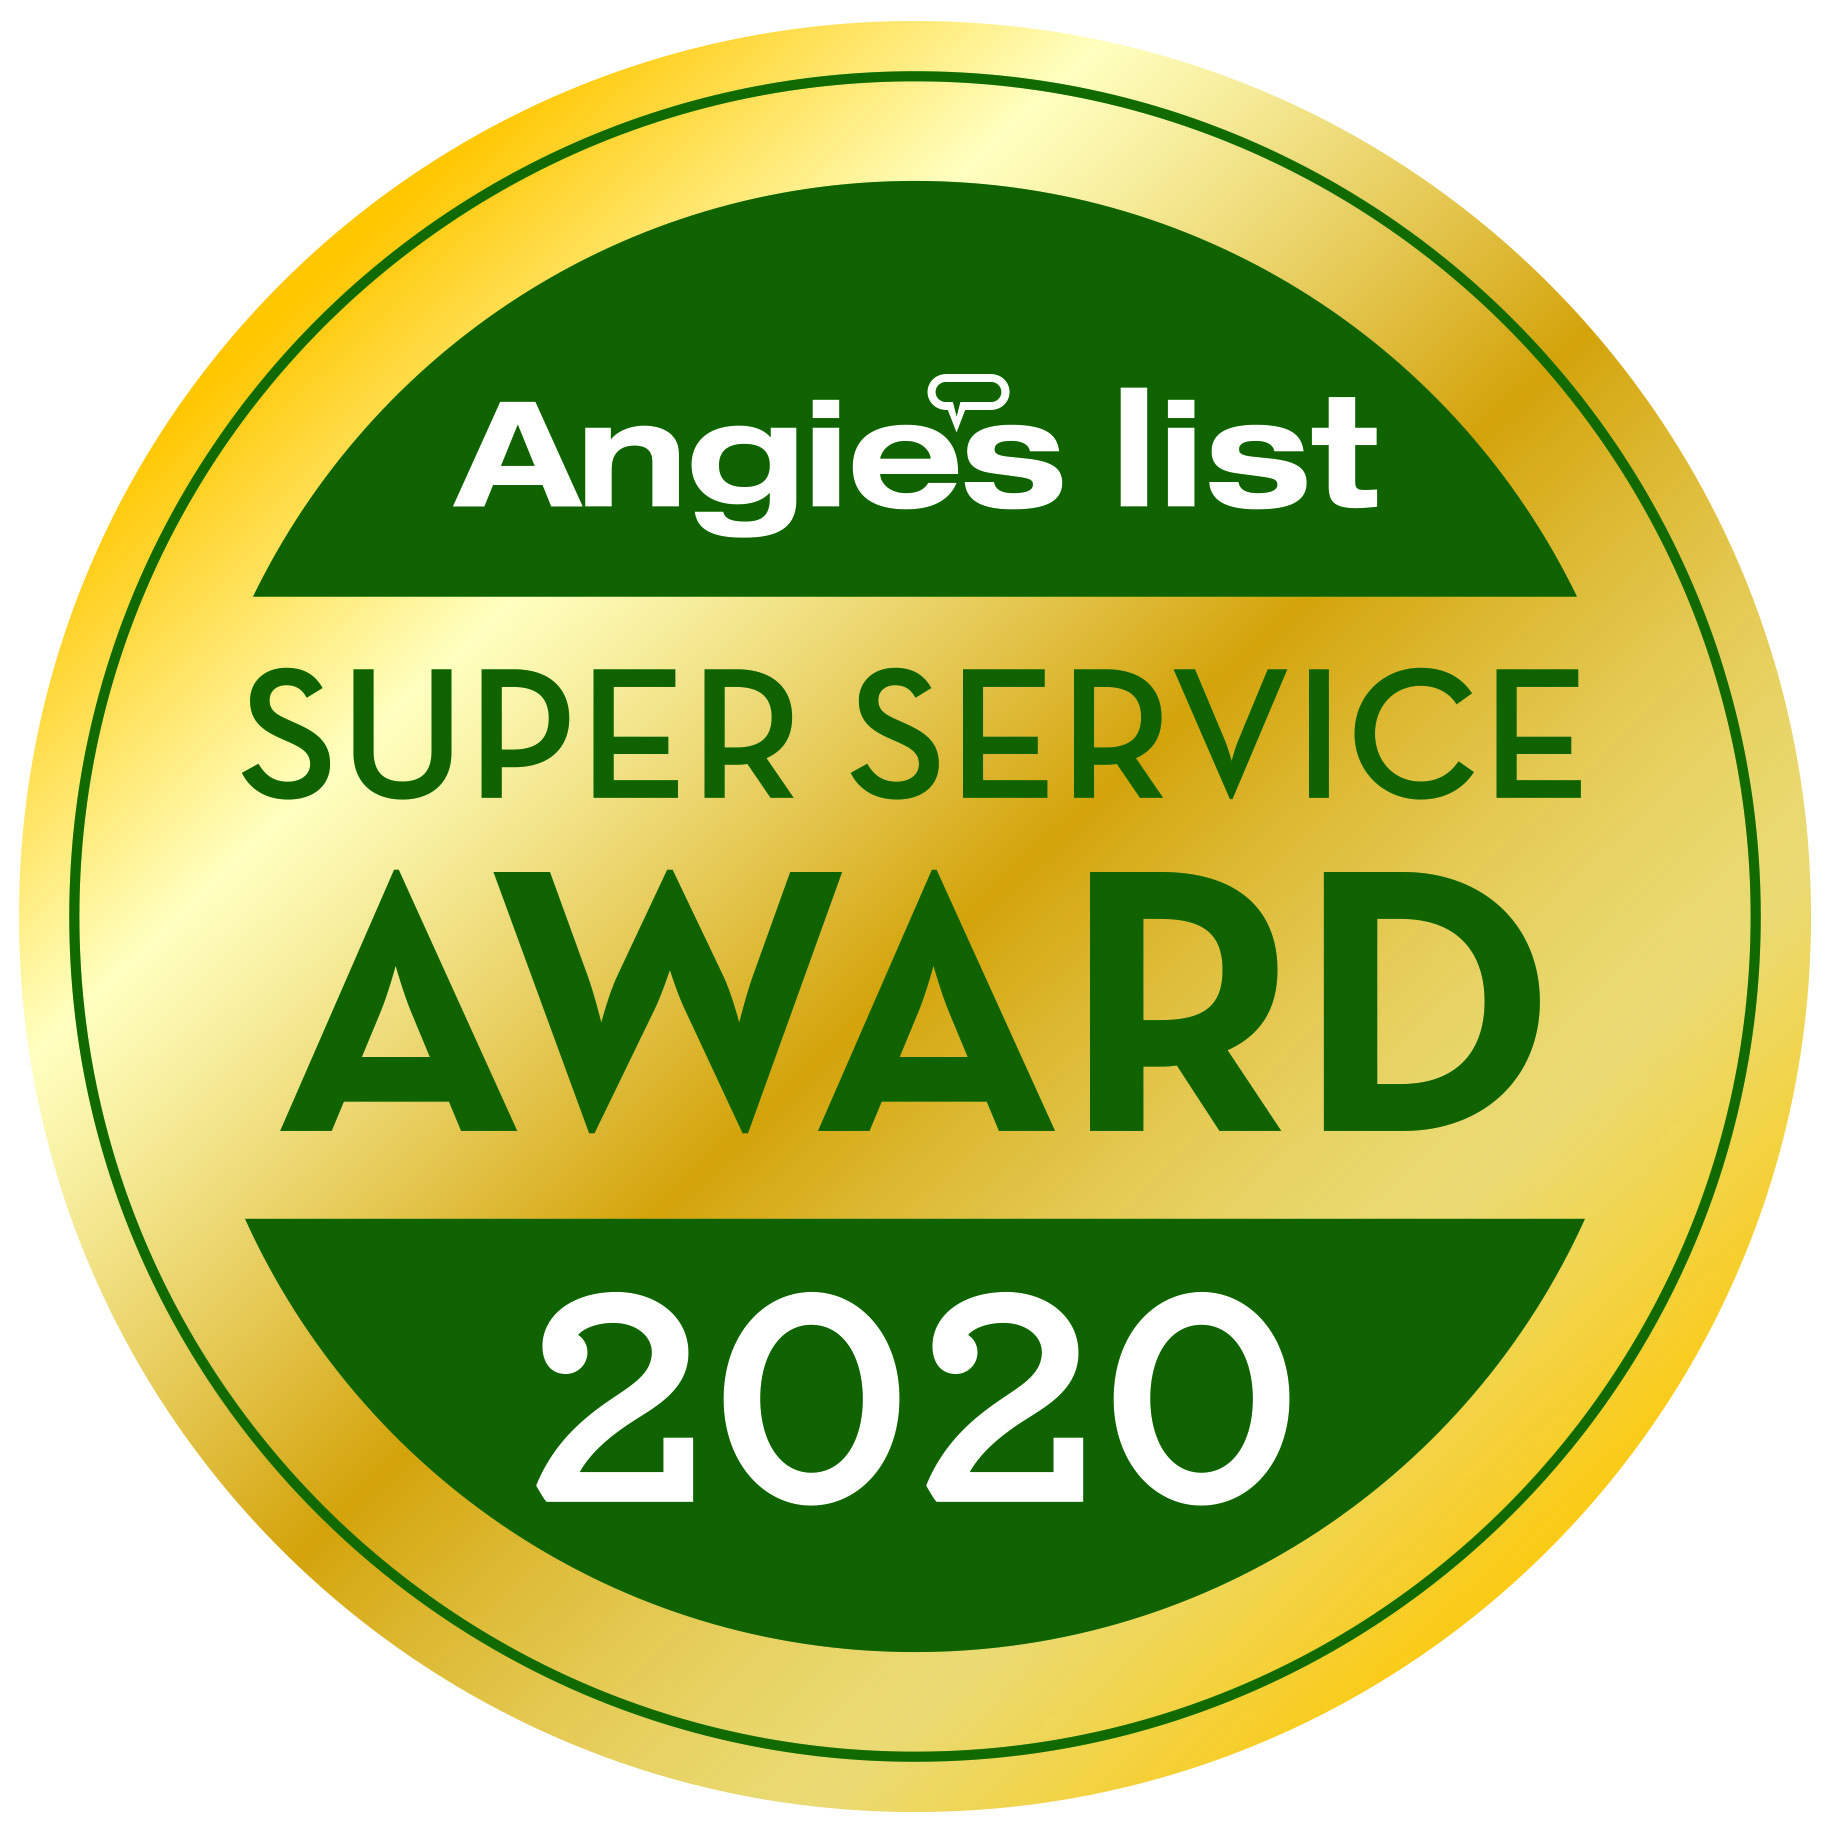 Stress Free Roofing Earns 2020 Angie's List Super Service Award